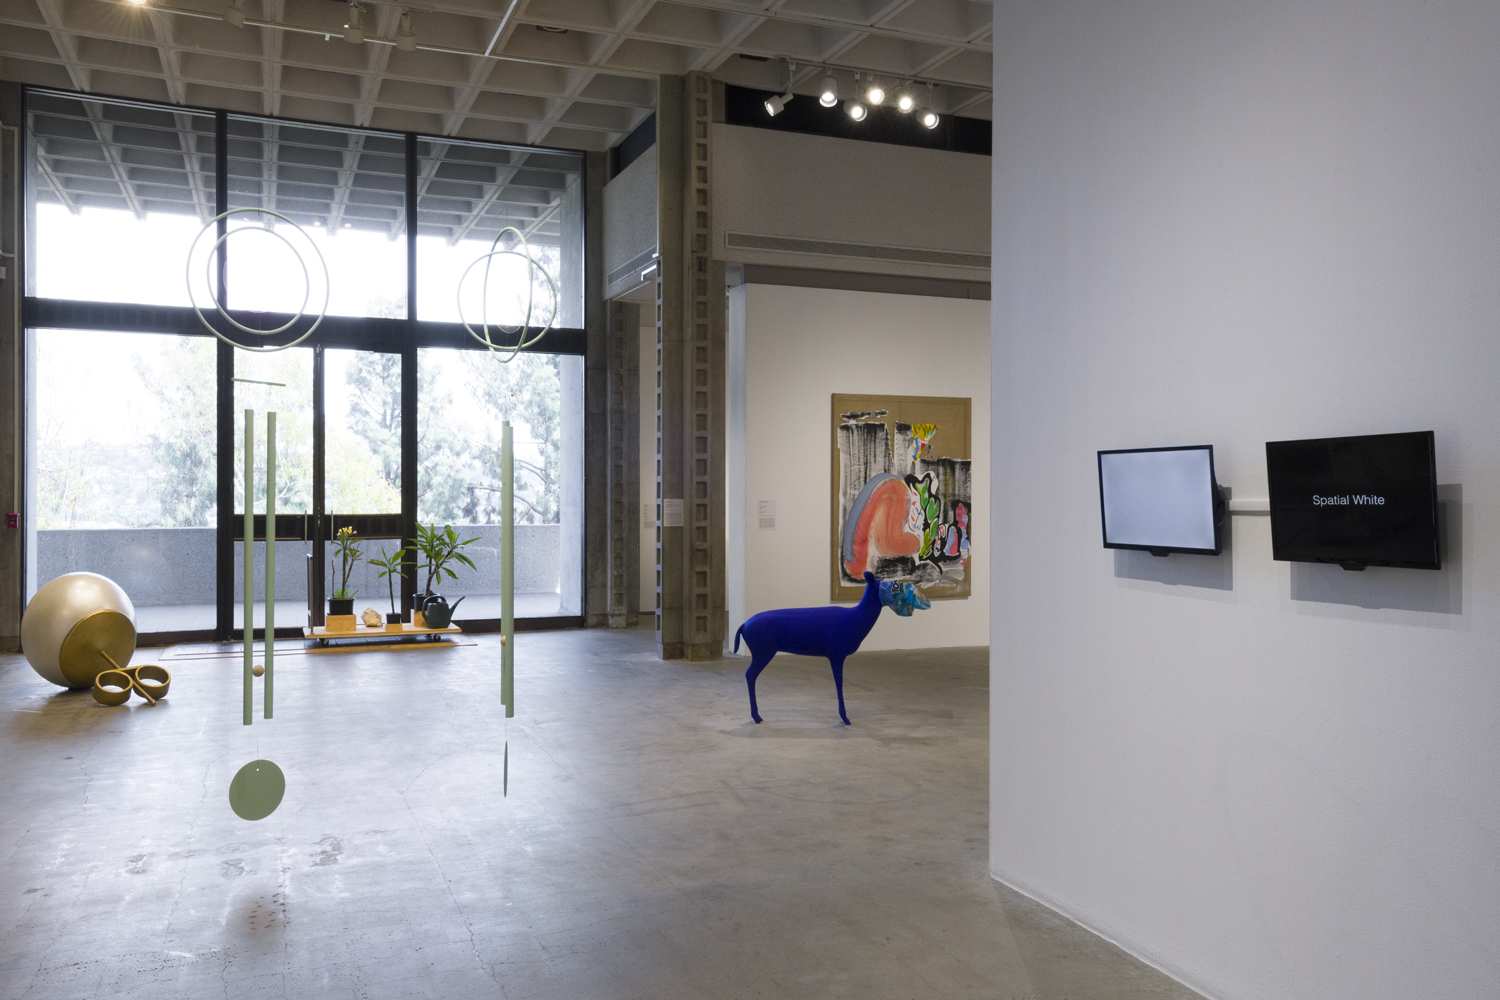 There are two light green sculptural chime works hanging from the ceiling by the artists Rebecca Bruno and Mak Kern. Behind this work to the left is a large sculpture depicting a pearl stud placed on the floor by the artist Alex Nazari. To the right of this artwork is an installation of plumeria plants on a wooden dolly by the artist David Horvitz. To the right of this work is a large abstract painting with various shades of pink, black, blue and green on brown canvas by the artist Lindsay August-Salazar. In front of this artwork is a sculpture depicting a cobalt-blue deer with a plastic chips bag over its head by the artists Galería Perdida. And in front of this work is a video artwork on two TV monitors by the artists pecking nets. One TV monitor has a blank white screen and the other TV monitor has a black screen with the words Spatial White.